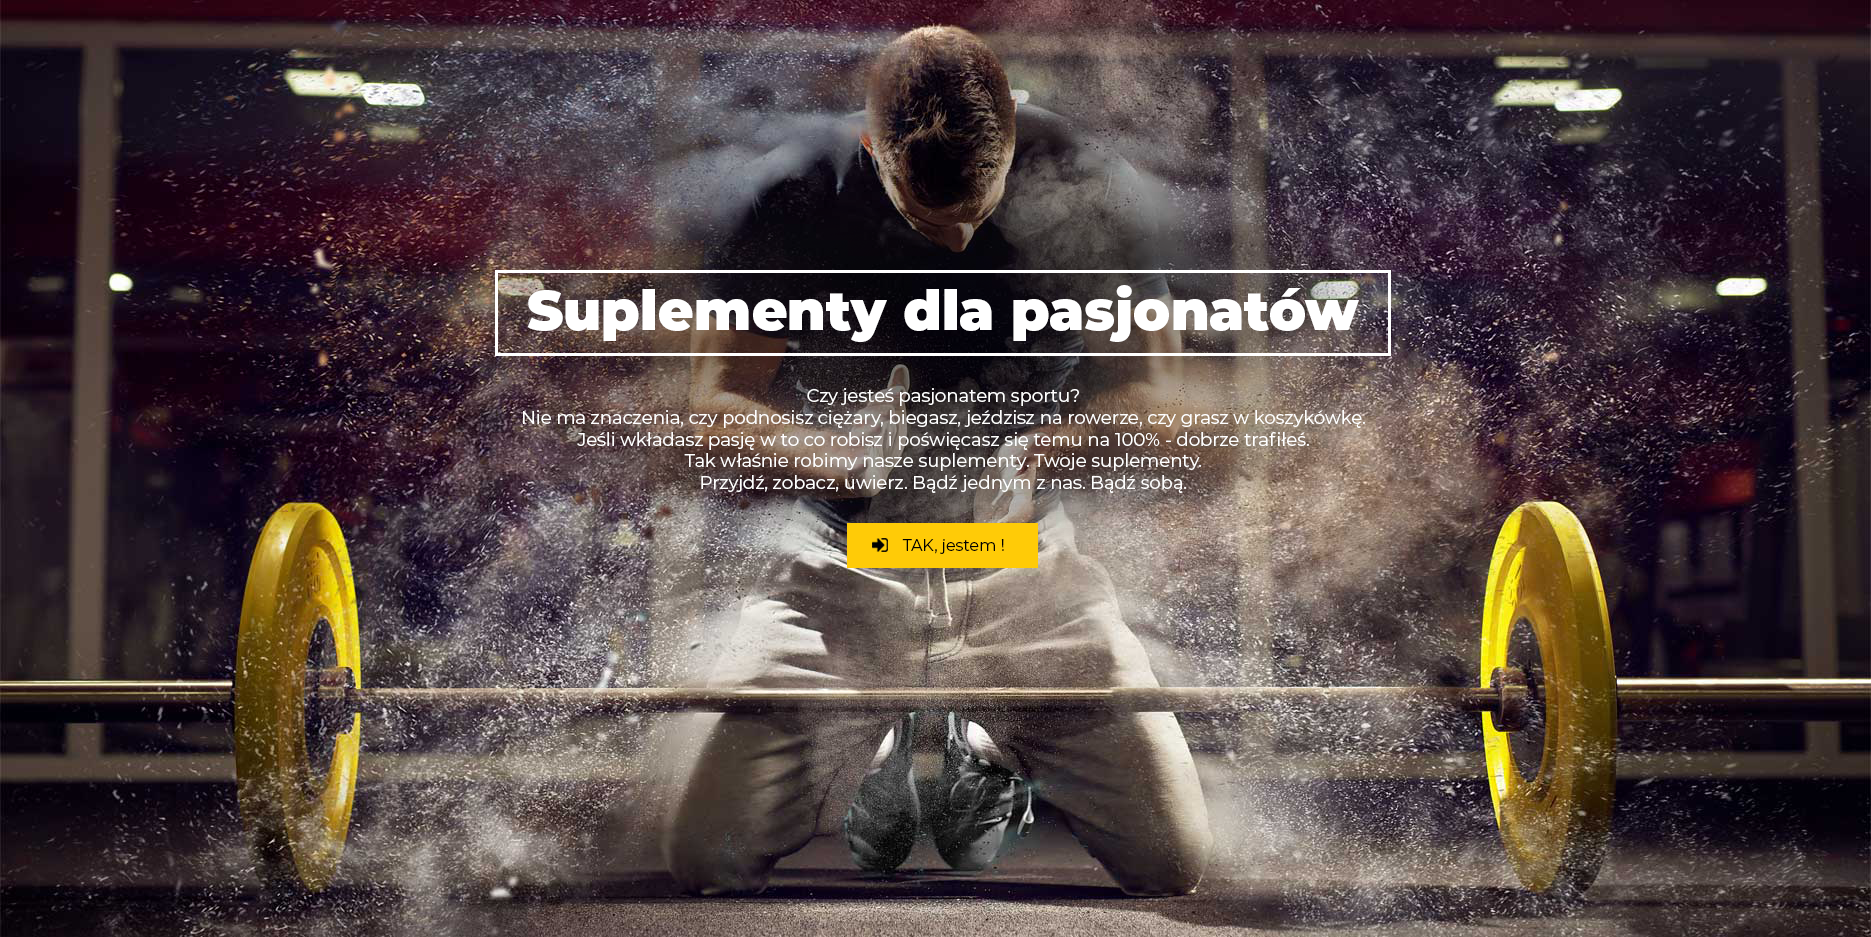 Passionate-athleete-lifting-weights-sports-supplements